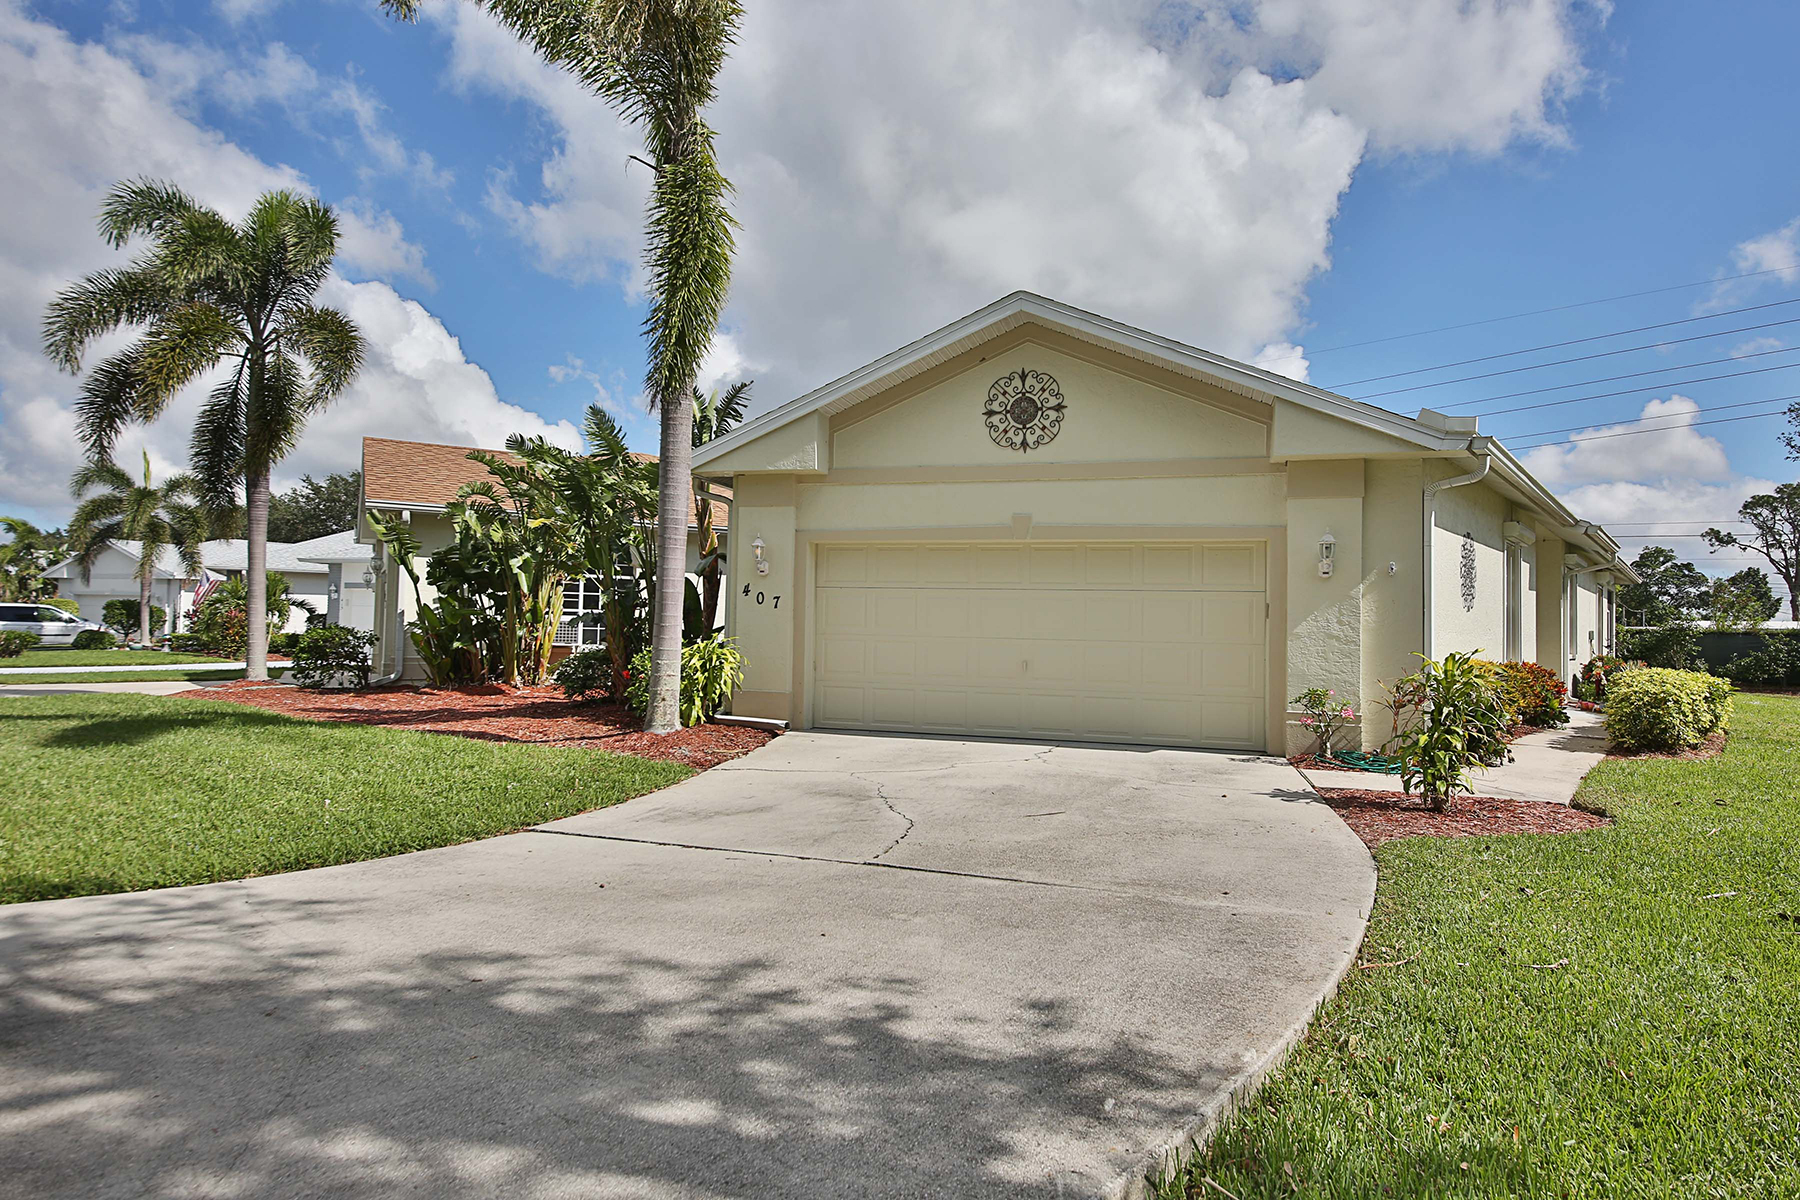 Townhouse for Sale at Naples 407 Crossfield Cir 83, Naples, Florida 34104 United States